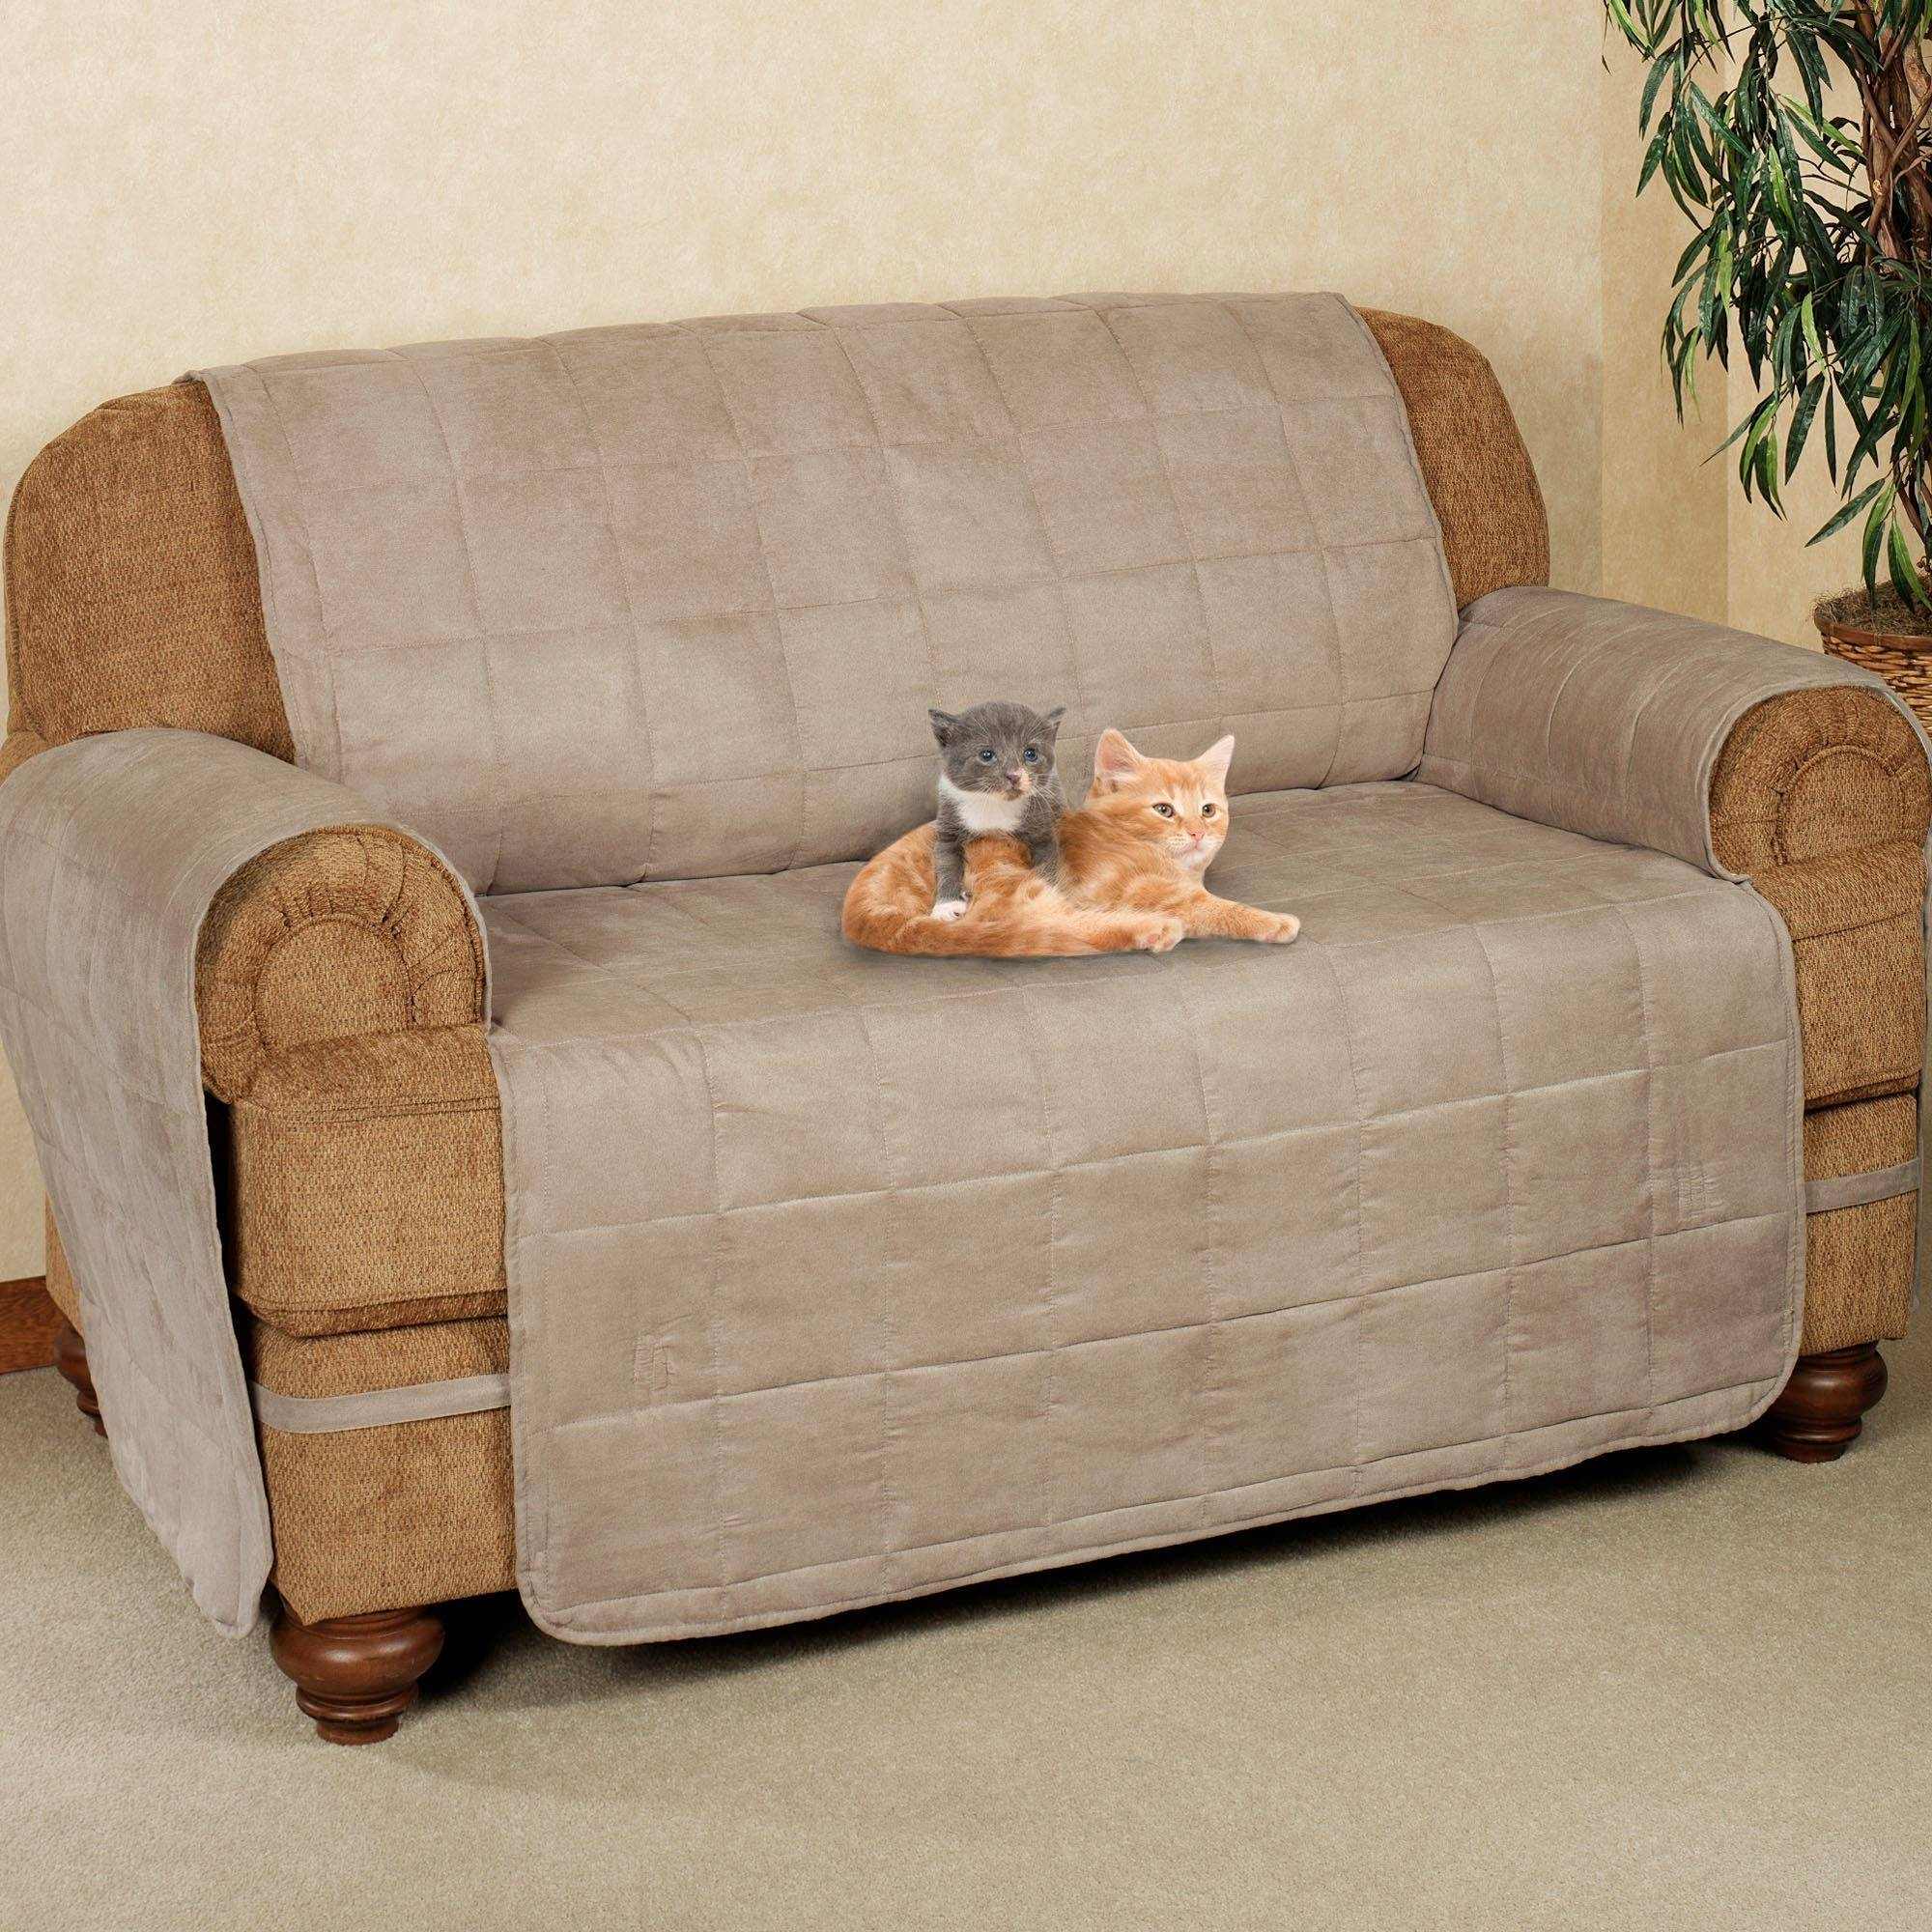 Ultimate Pet Furniture Protectors With Straps regarding Pet Proof Sofa Covers (Image 14 of 15)